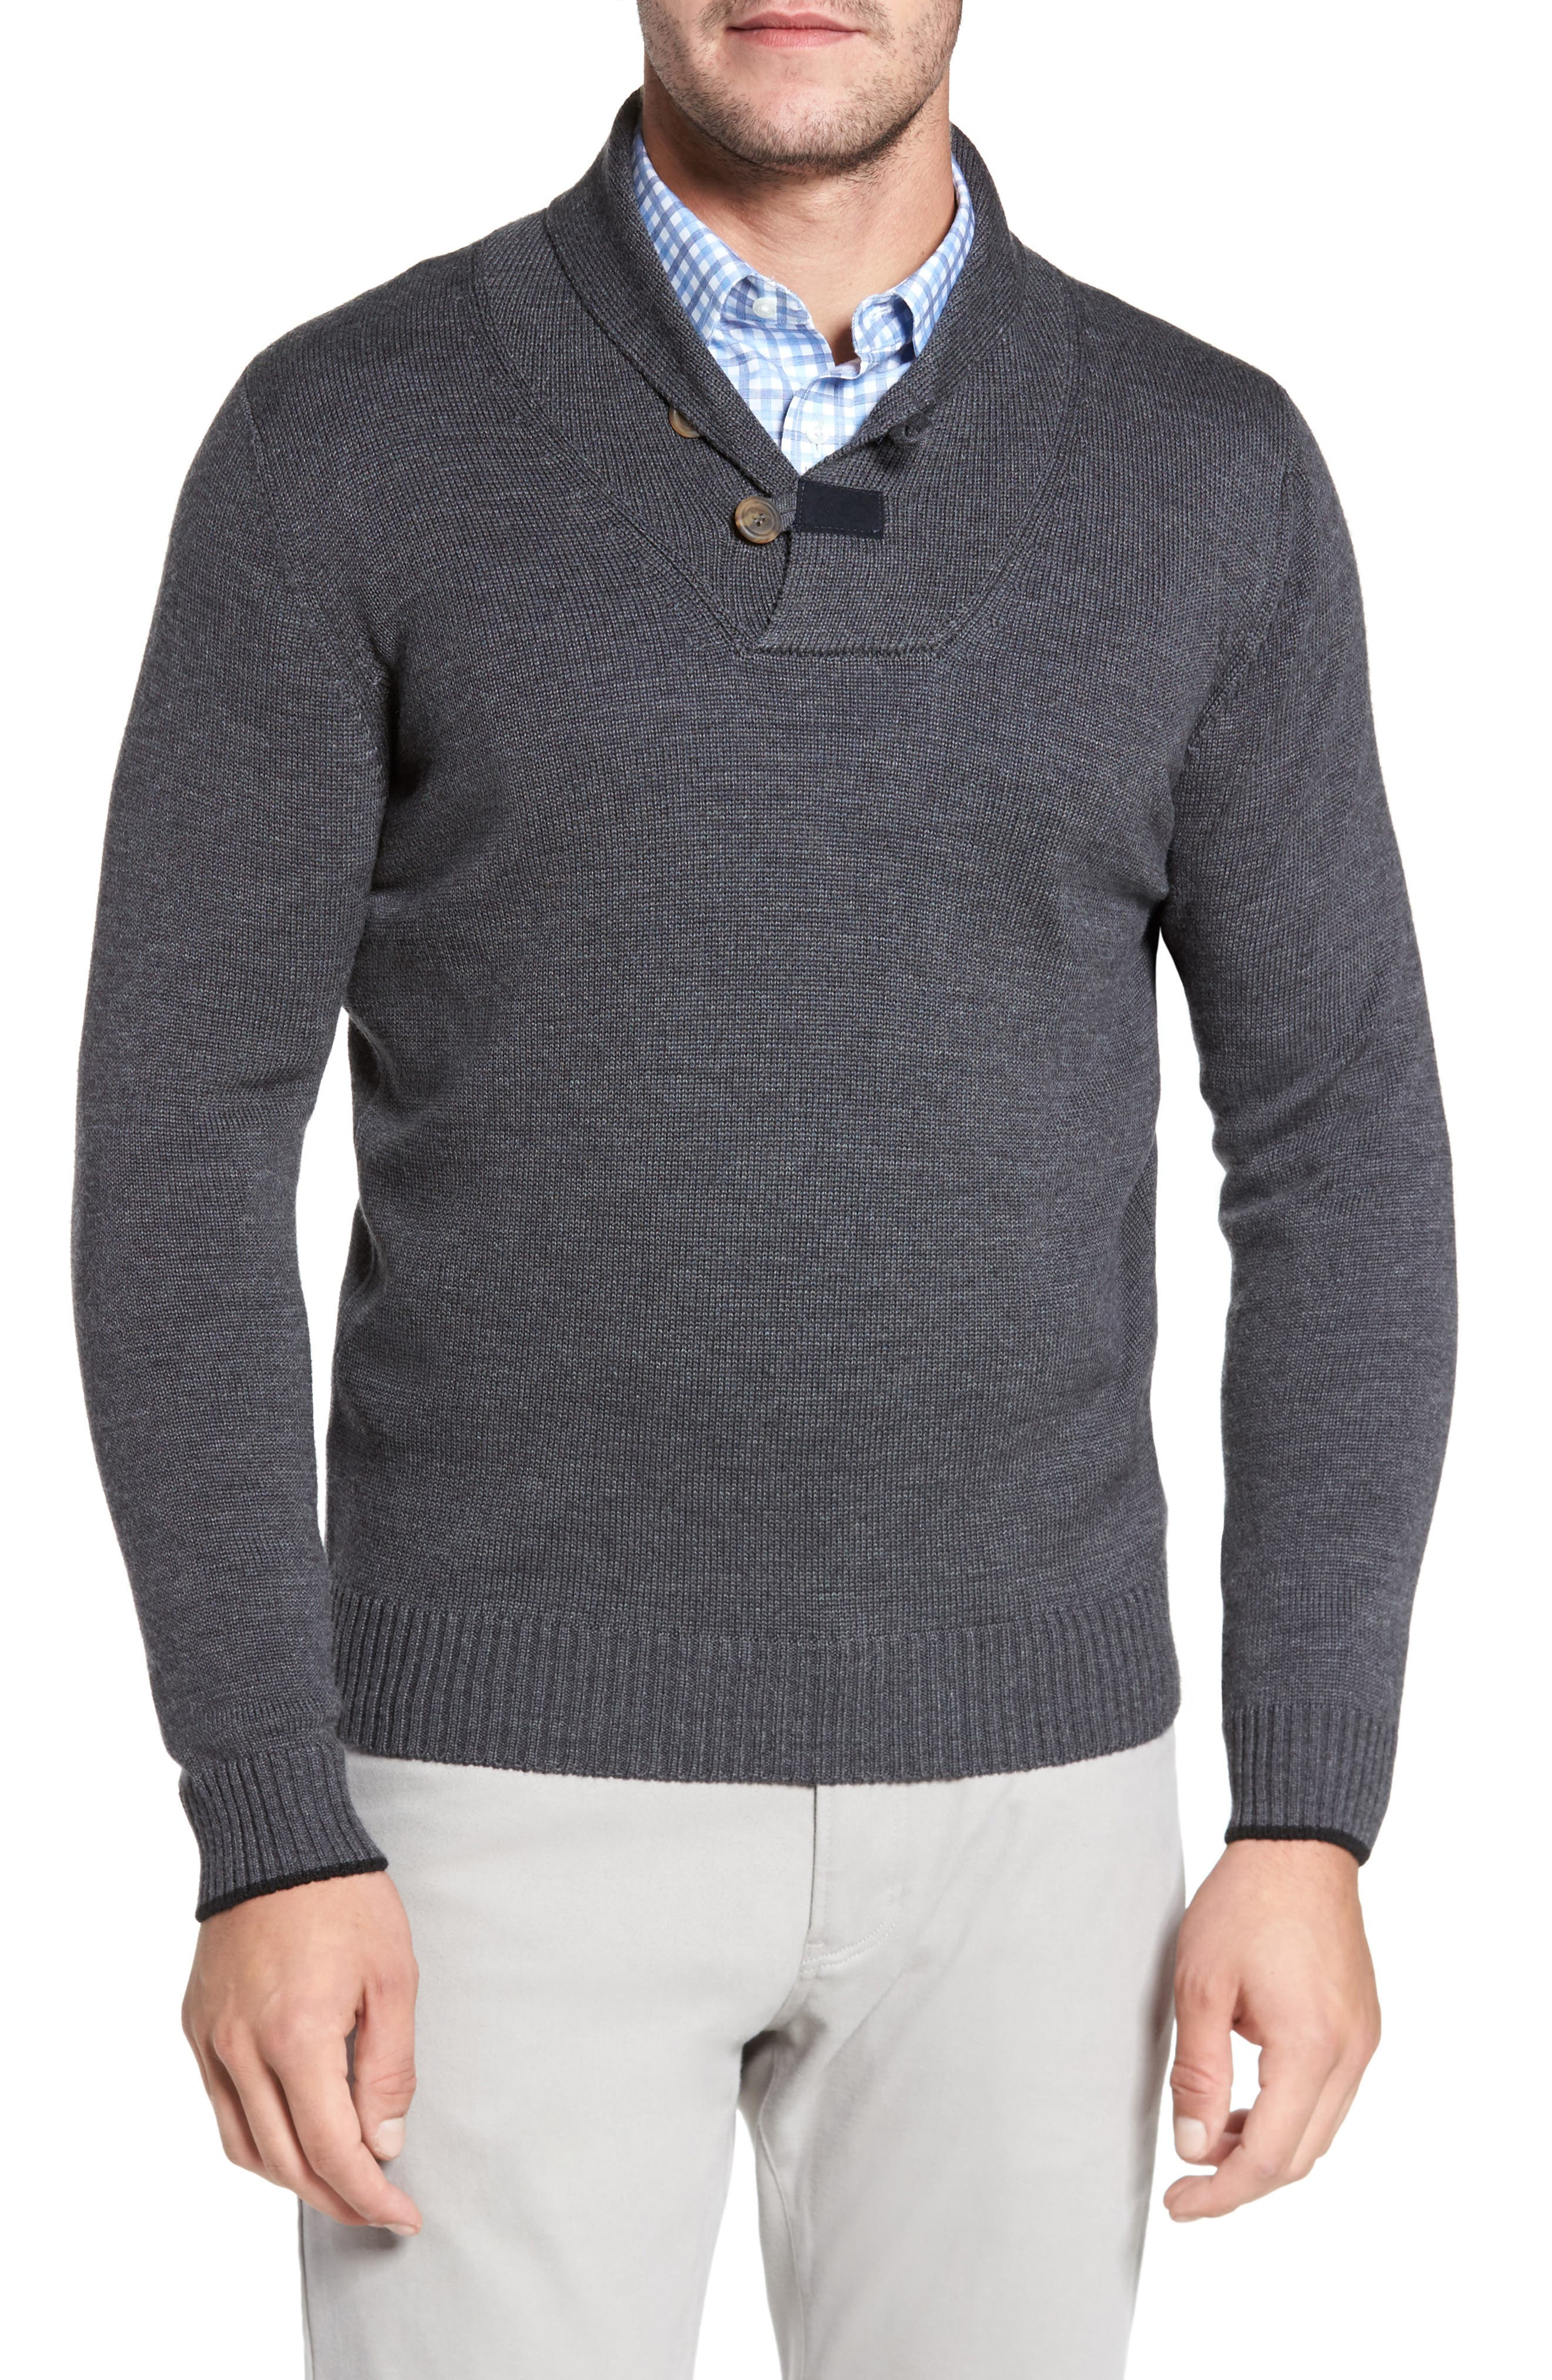 Alternate Image 1 Selected - David Donahue Merino Wool Shawl Collar Pullover